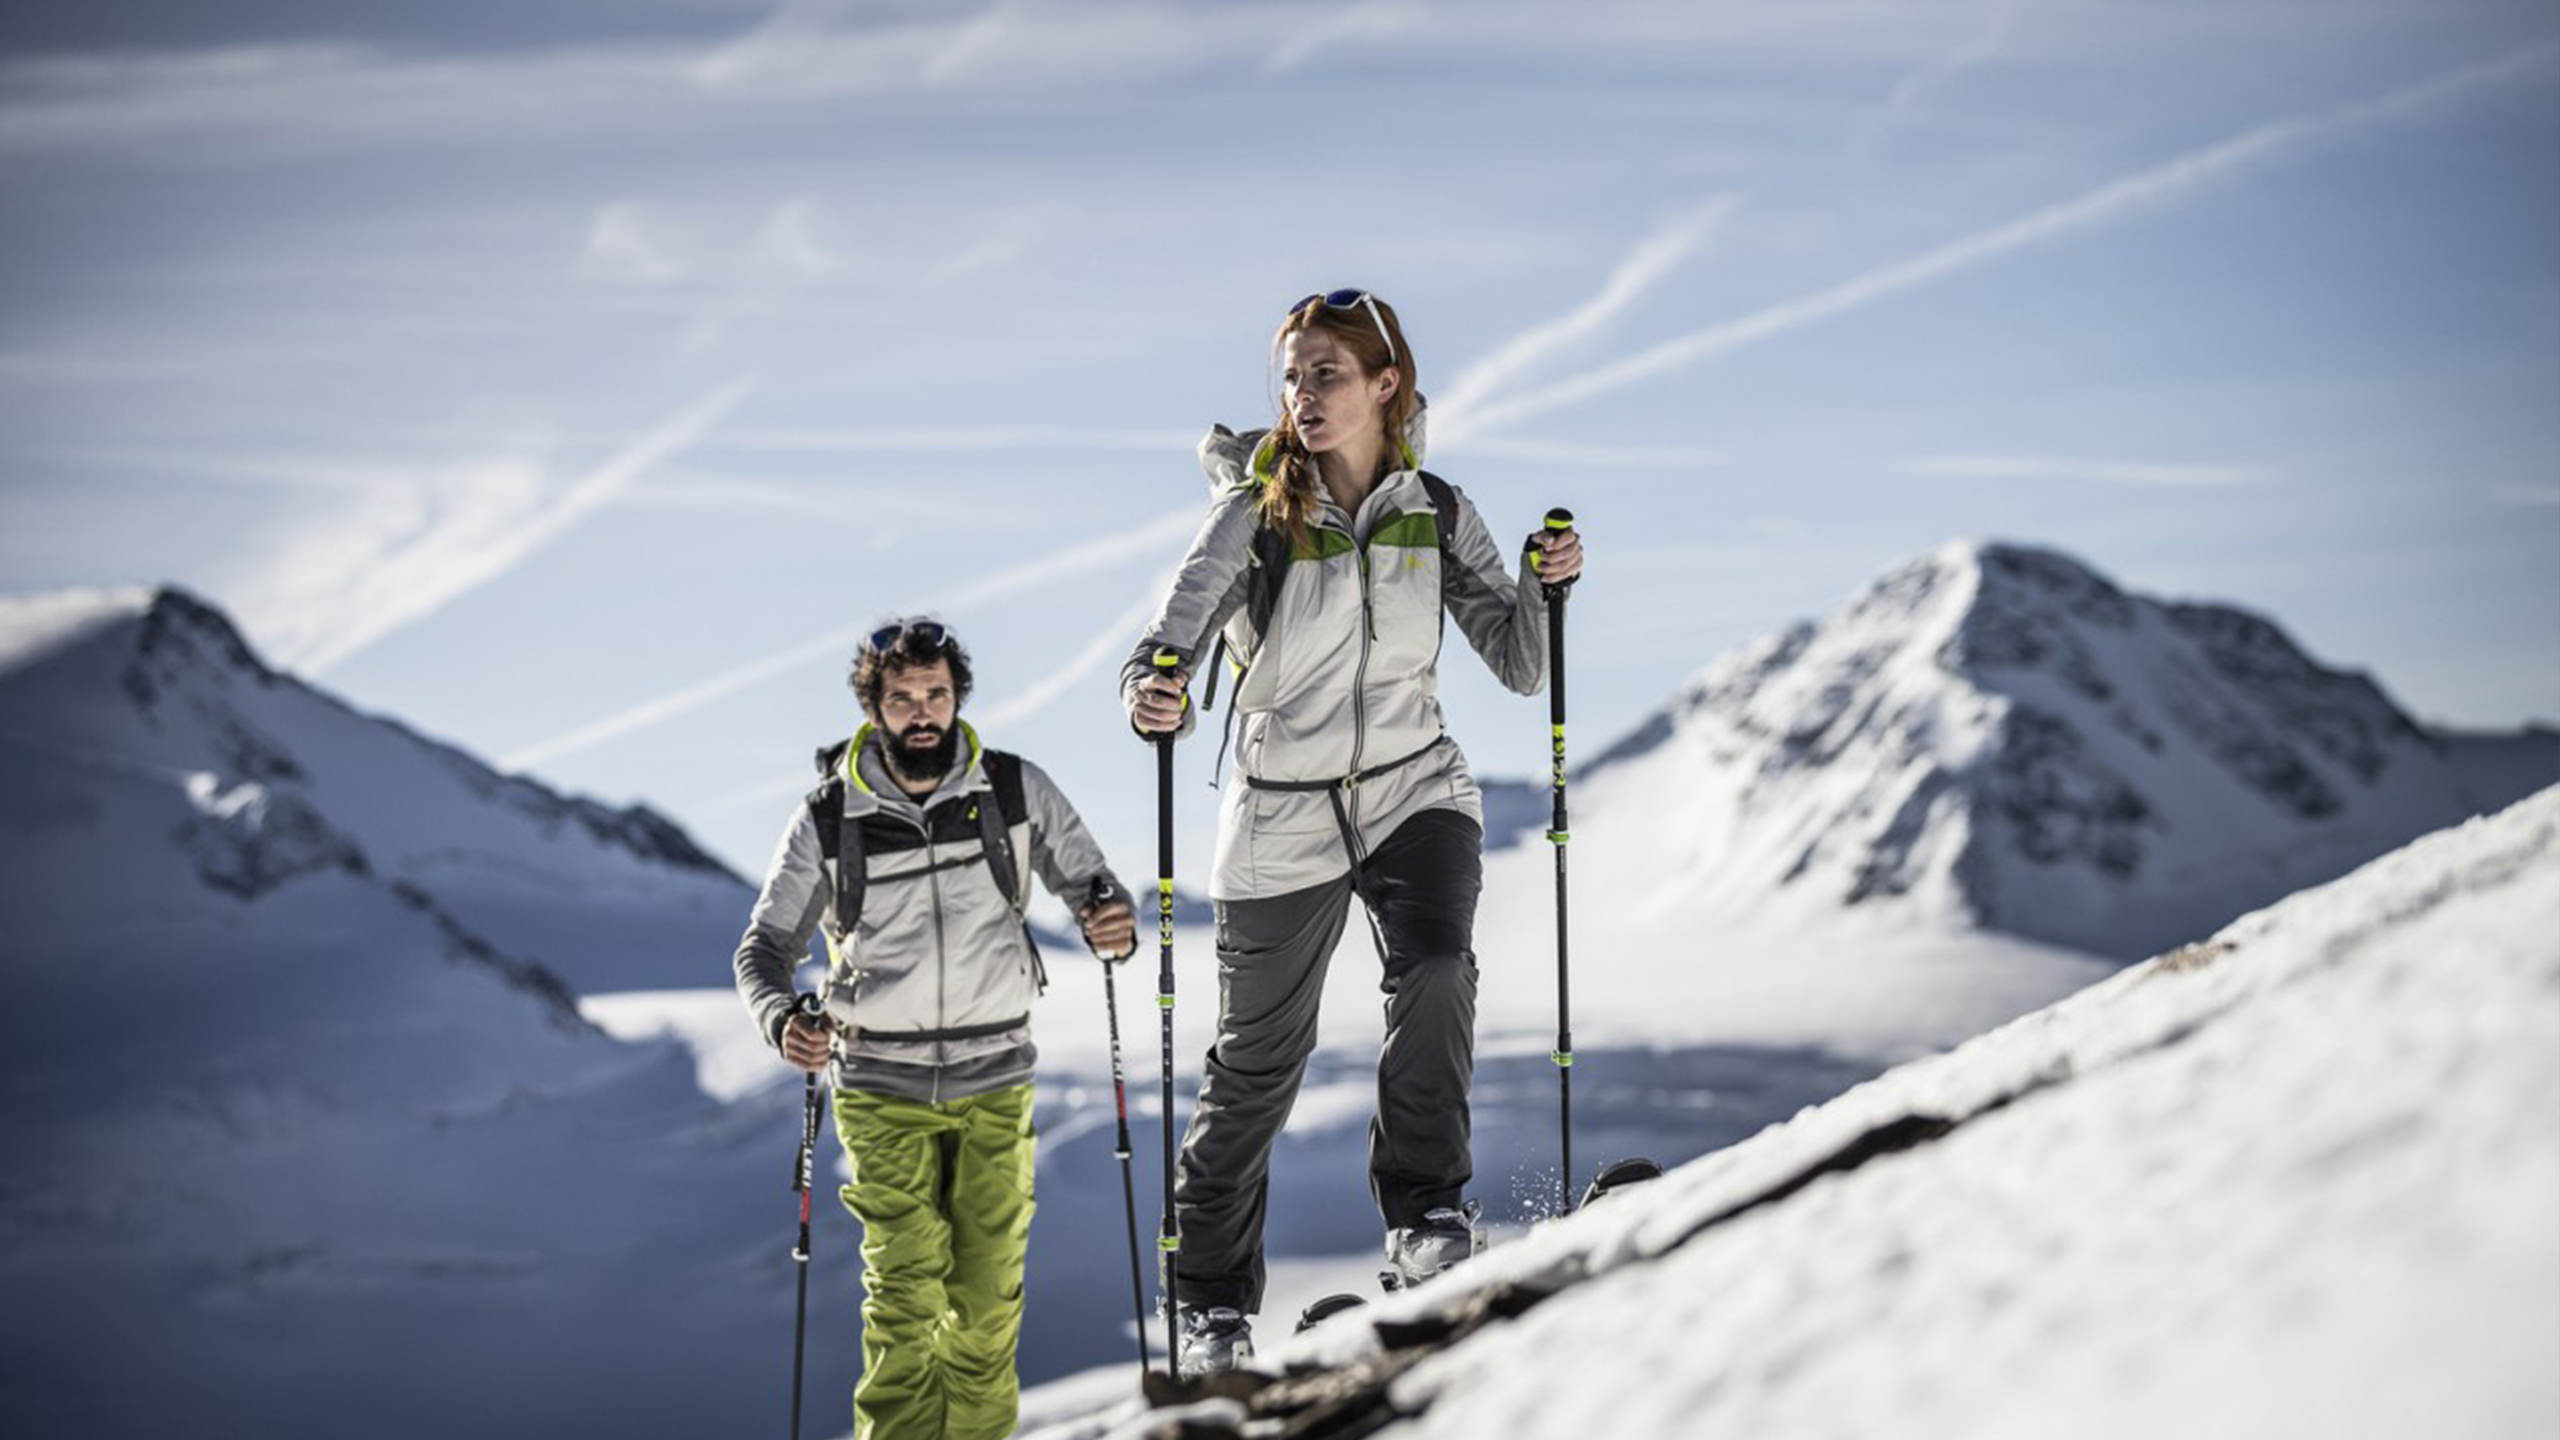 vaude-tepertise-newsletter